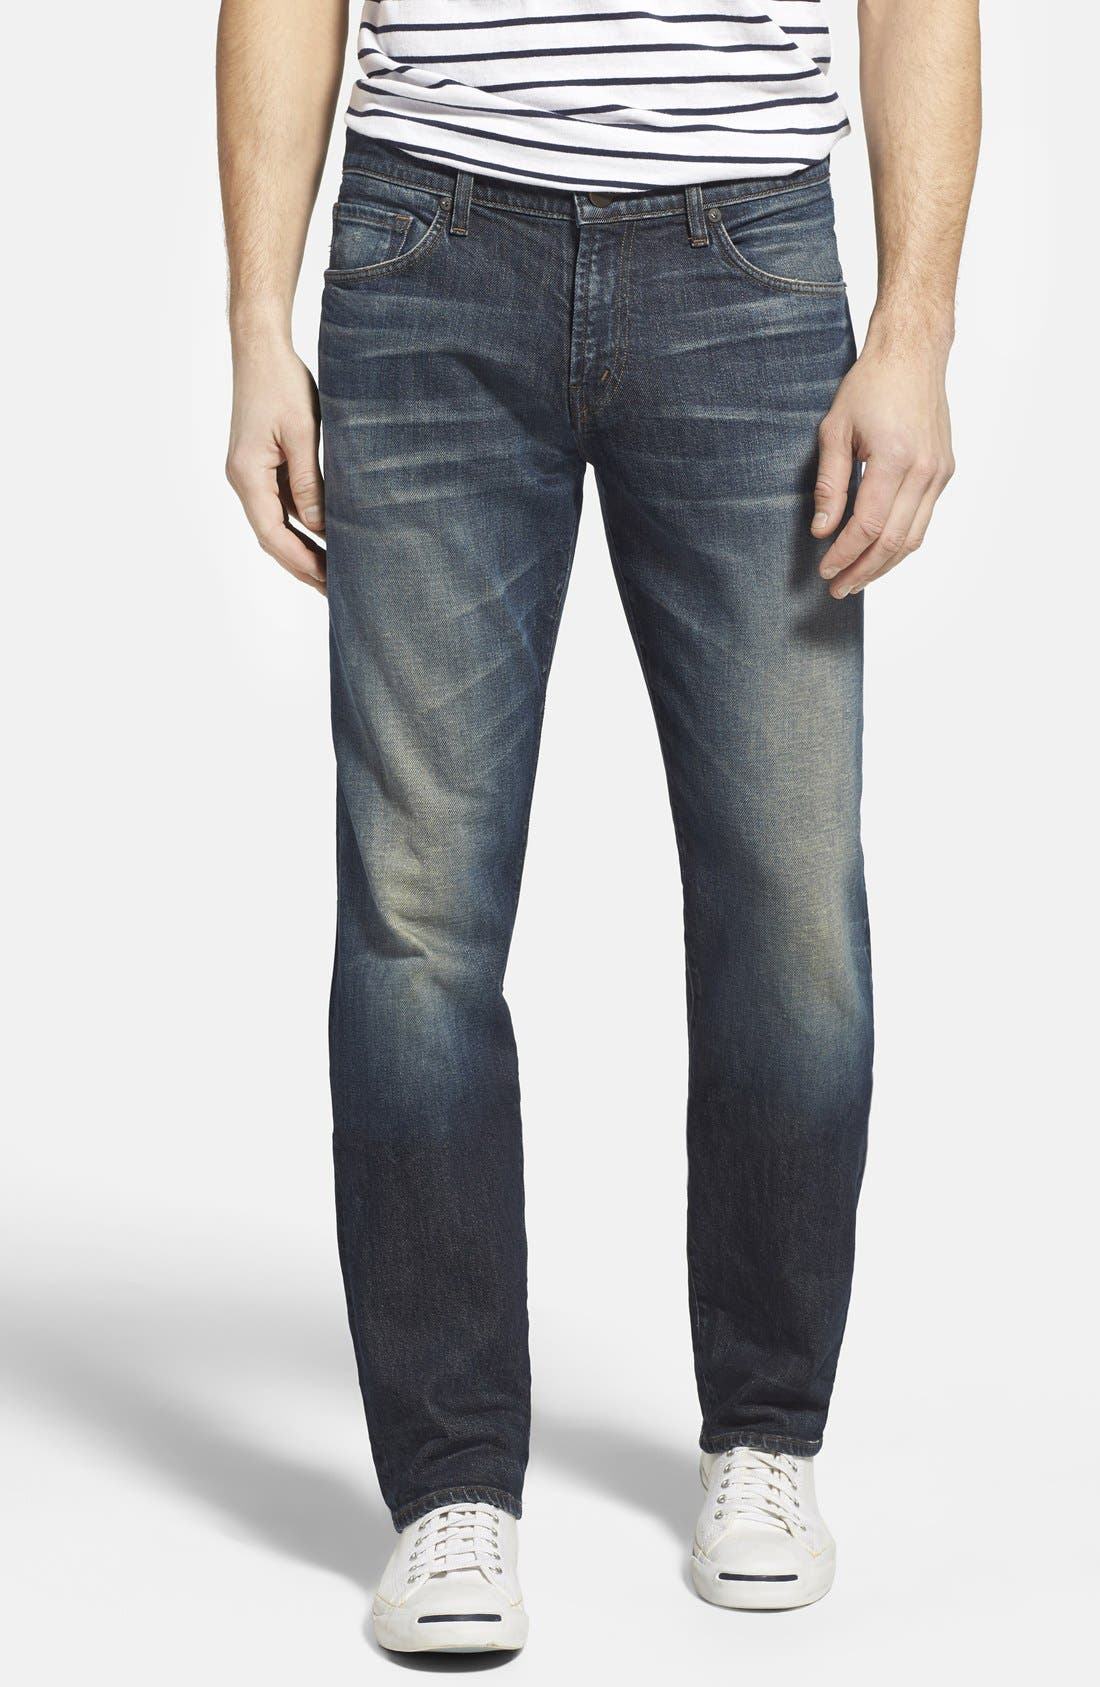 Alternate Image 1 Selected - J Brand 'Kane' Slim Straight Leg Jeans (Bronson)